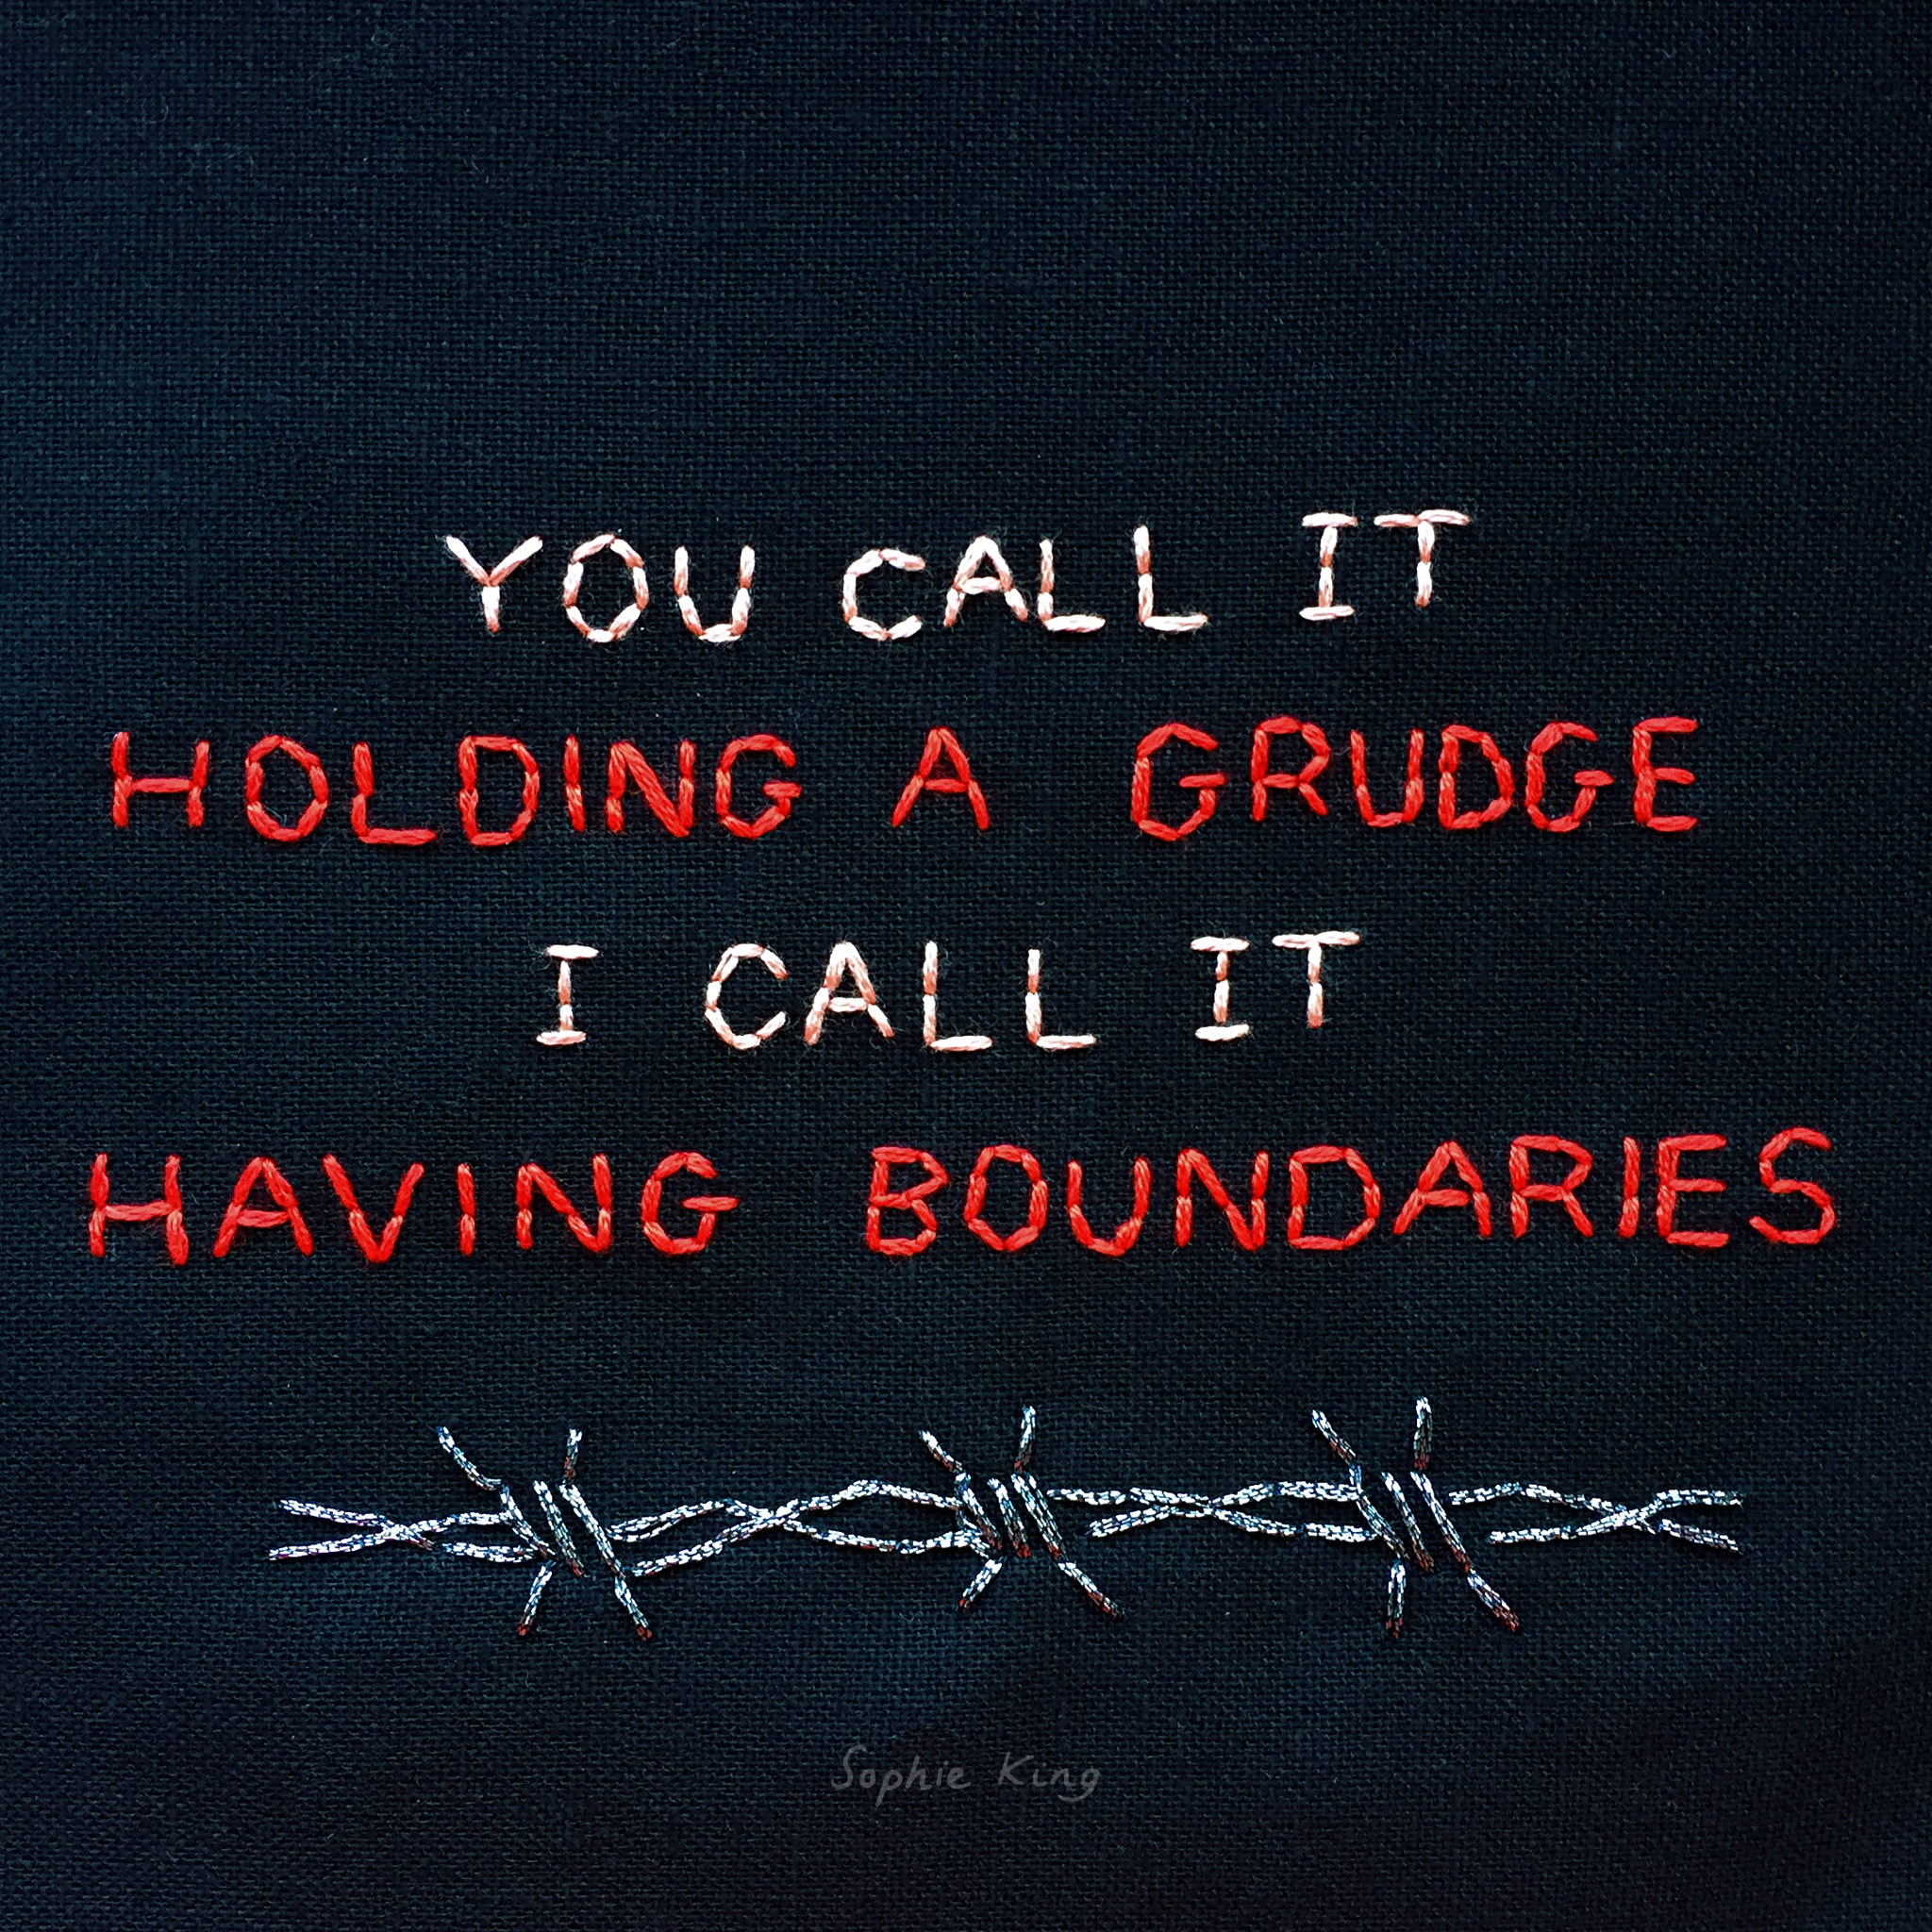 """embroidered """"you call it holding a grudge, I call it having boundaries"""" 2019, Sophie King"""